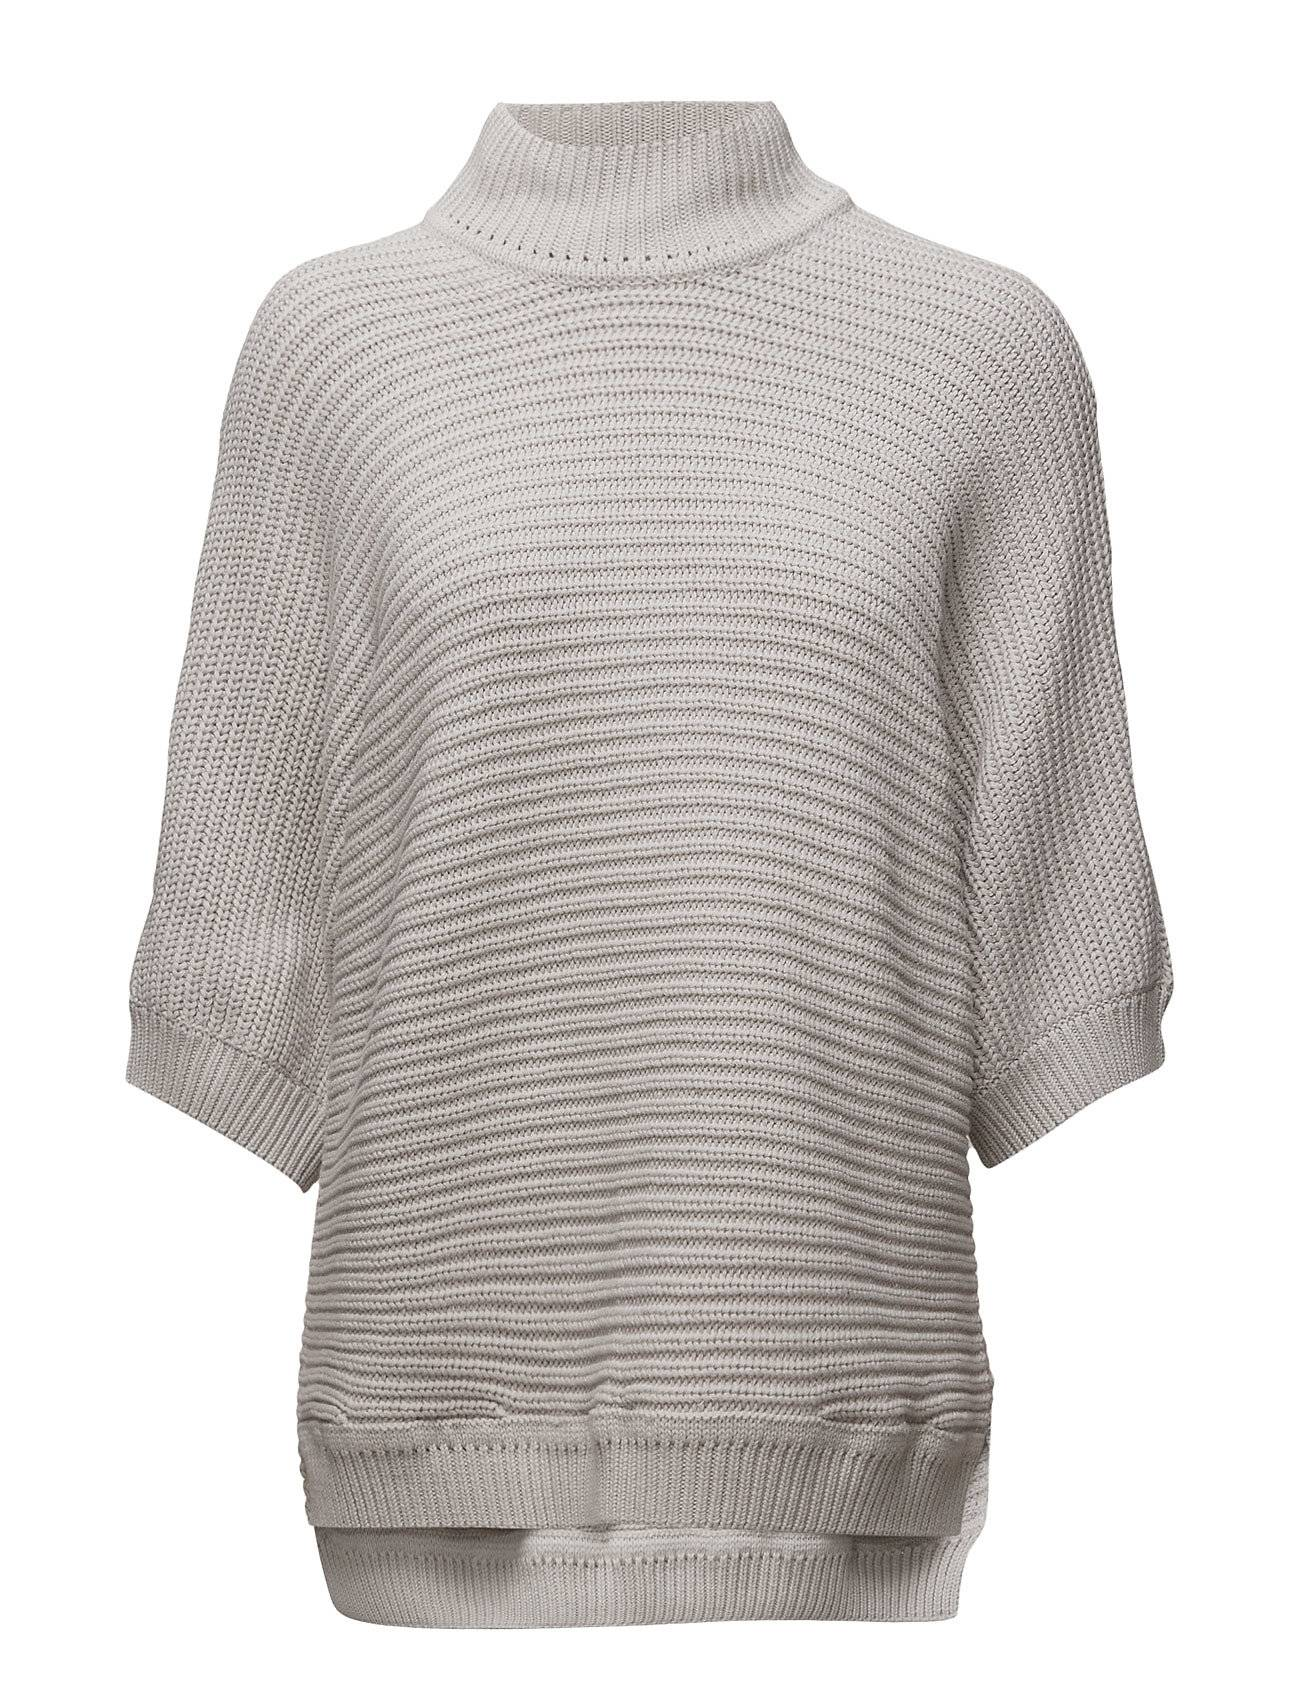 Hunkydory Lille Knit